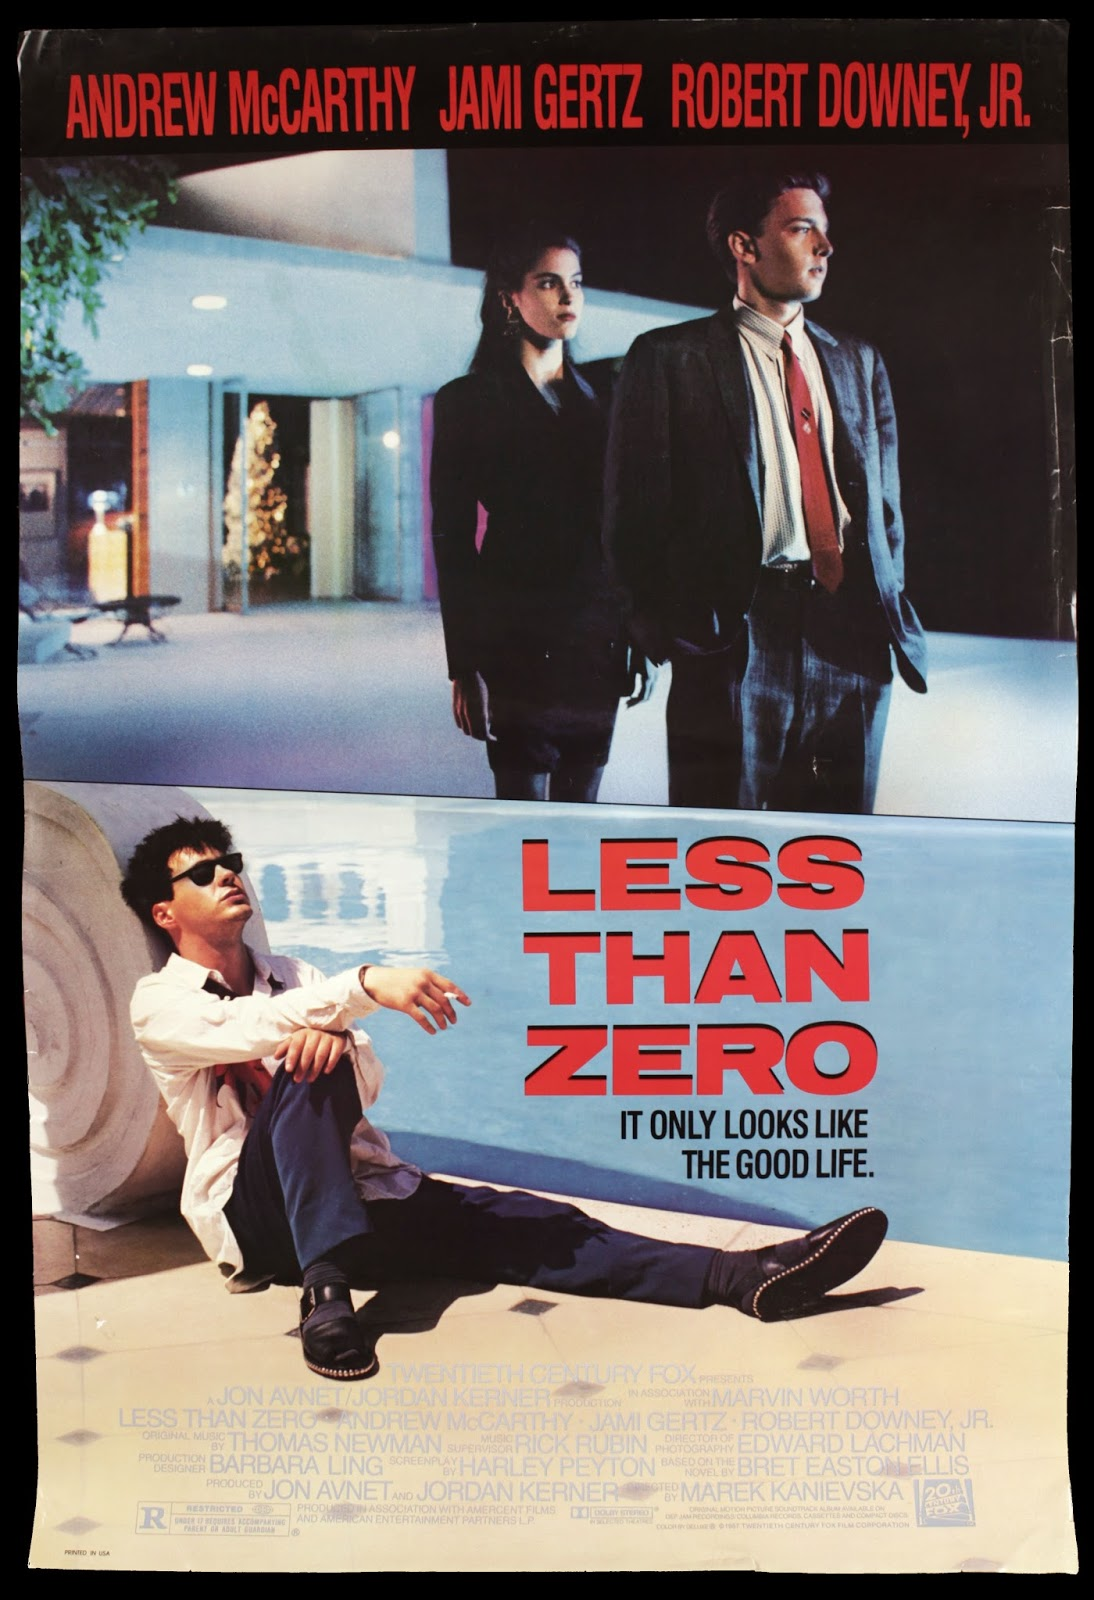 Less Than Zero: Bret Easton Ellis tells a tale of the disaffected Beverly Hills youth | A Constantly Racing Mind